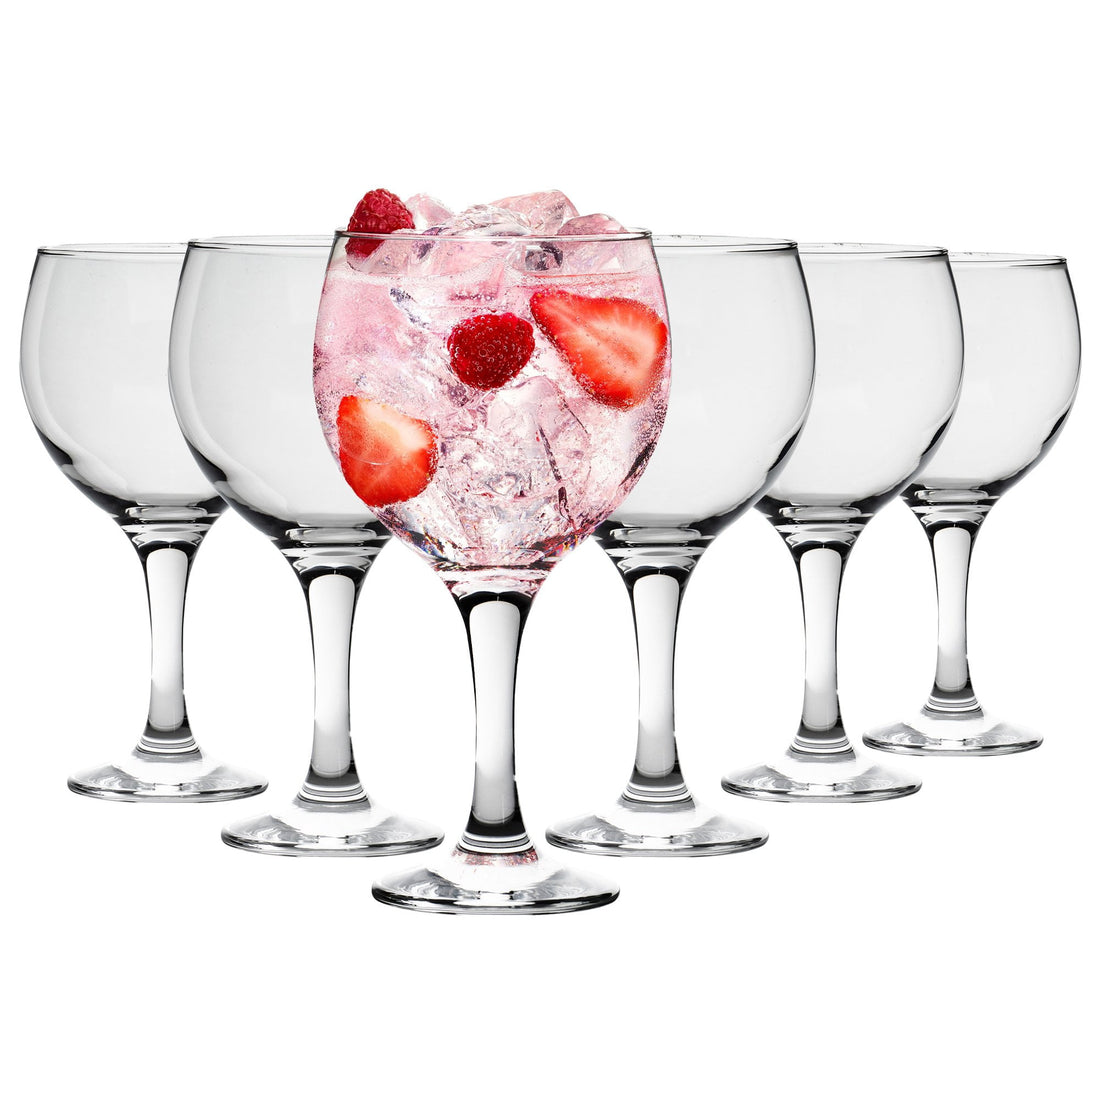 Rink Drink Spanish Gin Glasses - 645ml - Pack of 6